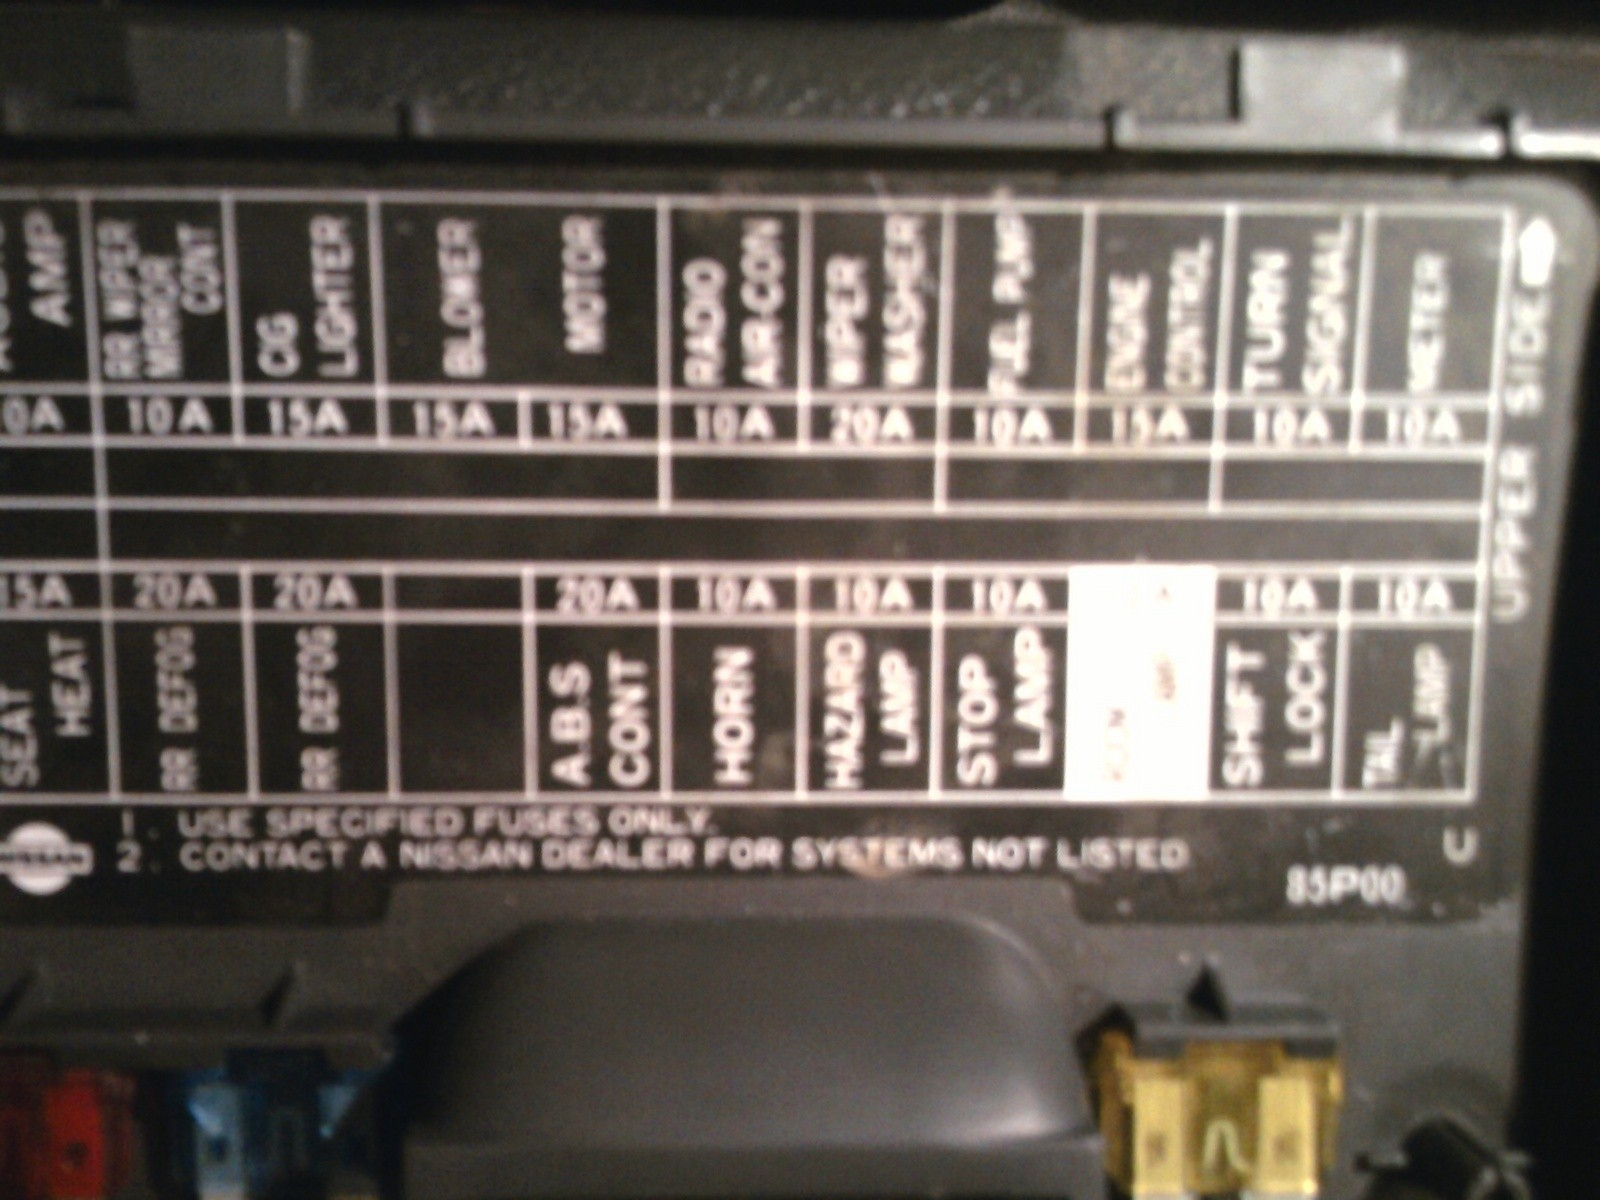 1997 Nissan Pickup Engine Diagram Nissan Pickup Questions where is the Fuse for the Hazard Lights On Of 1997 Nissan Pickup Engine Diagram